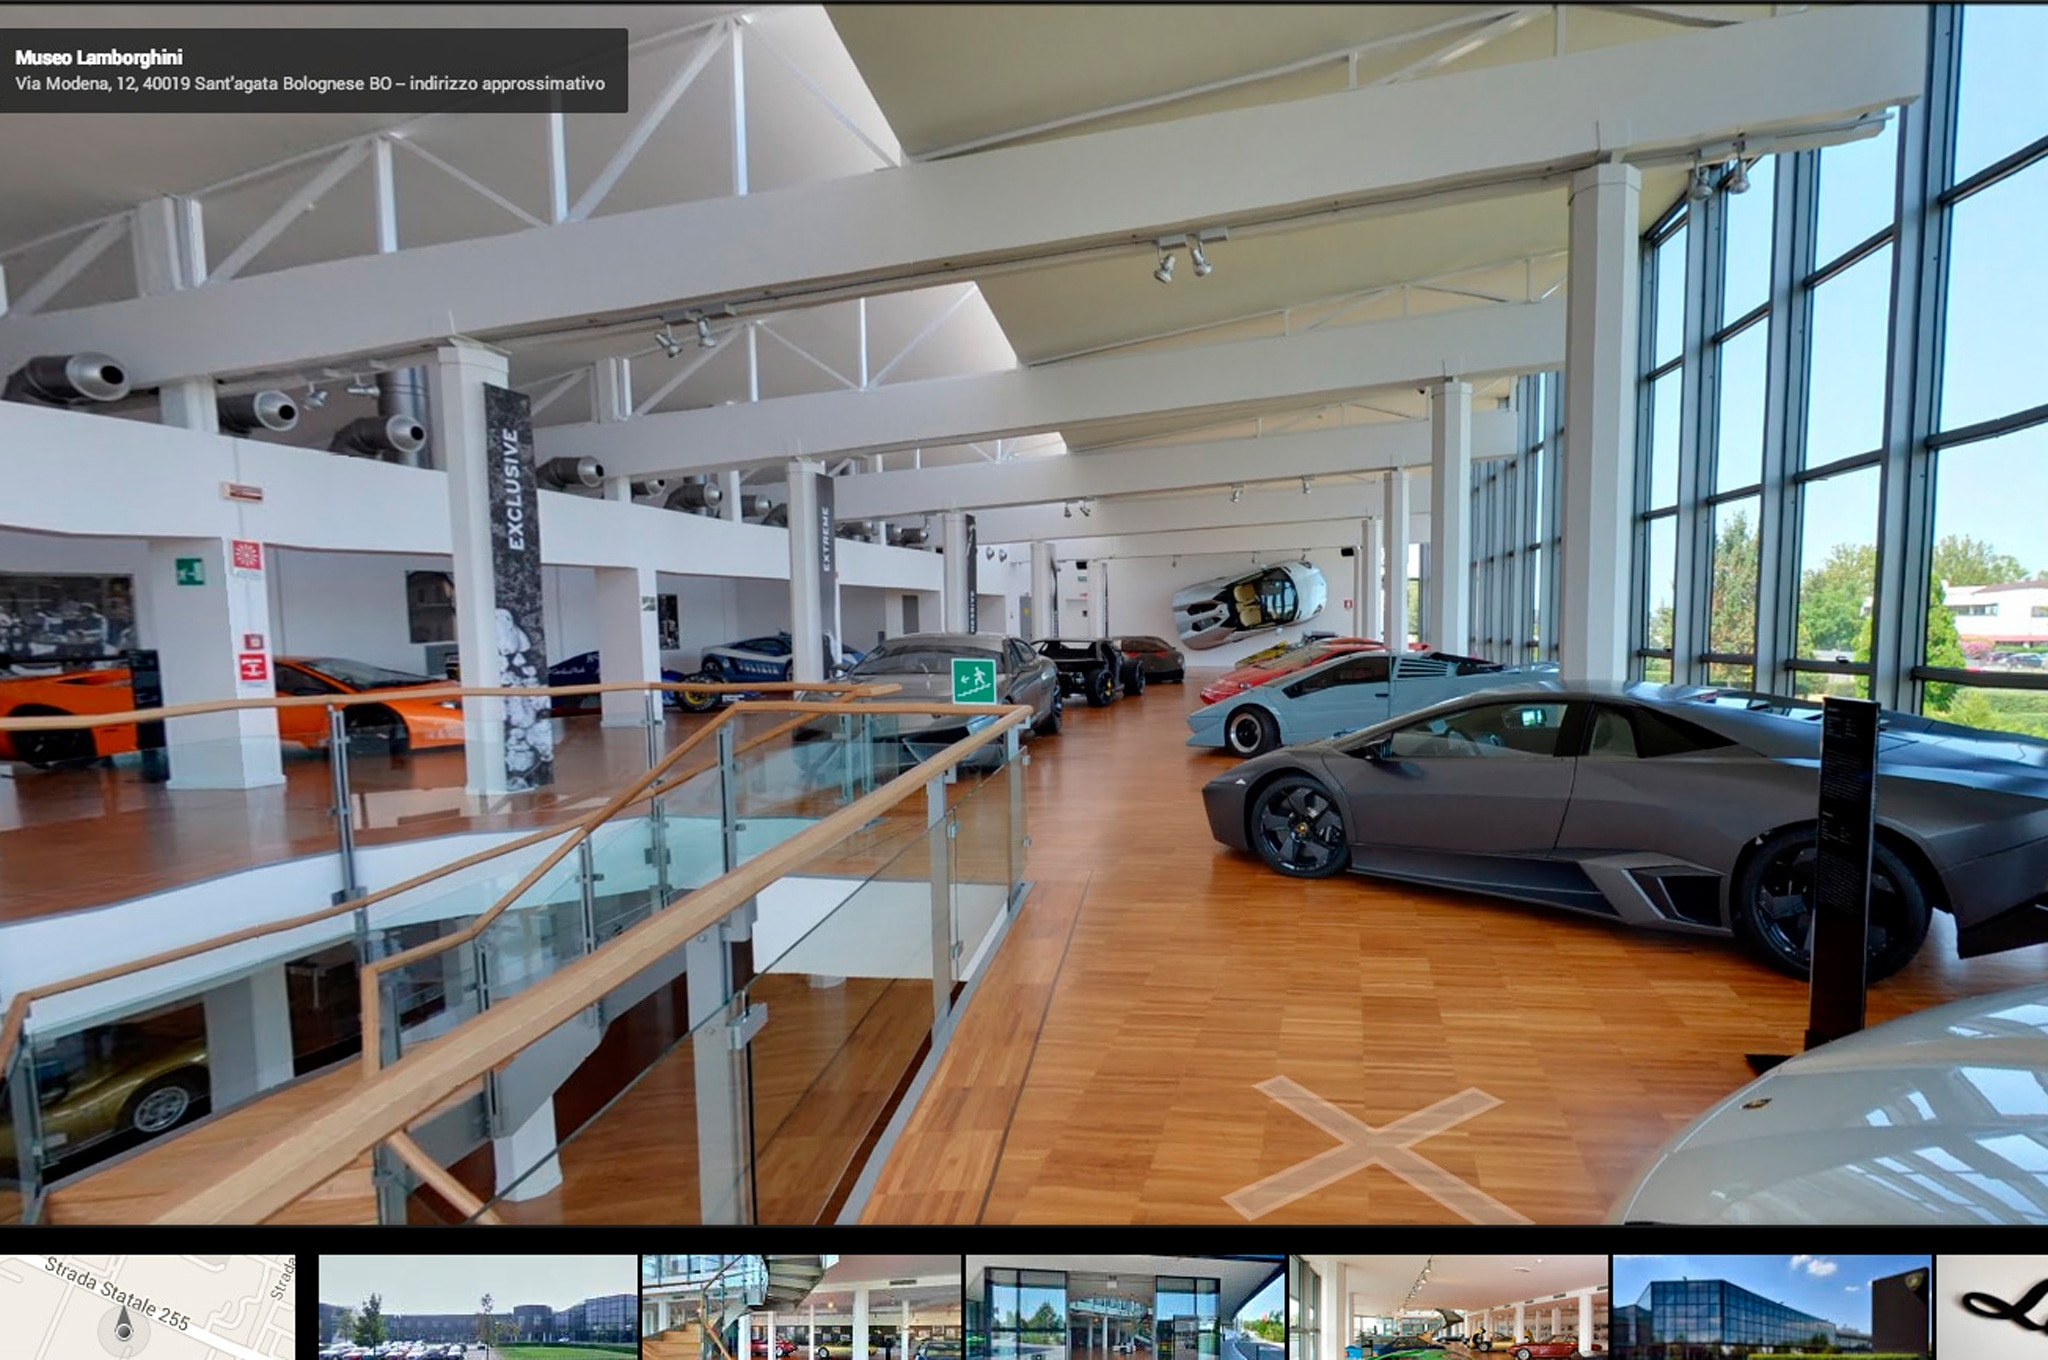 Lamborghini Museum On Google Street View Second Floor View1